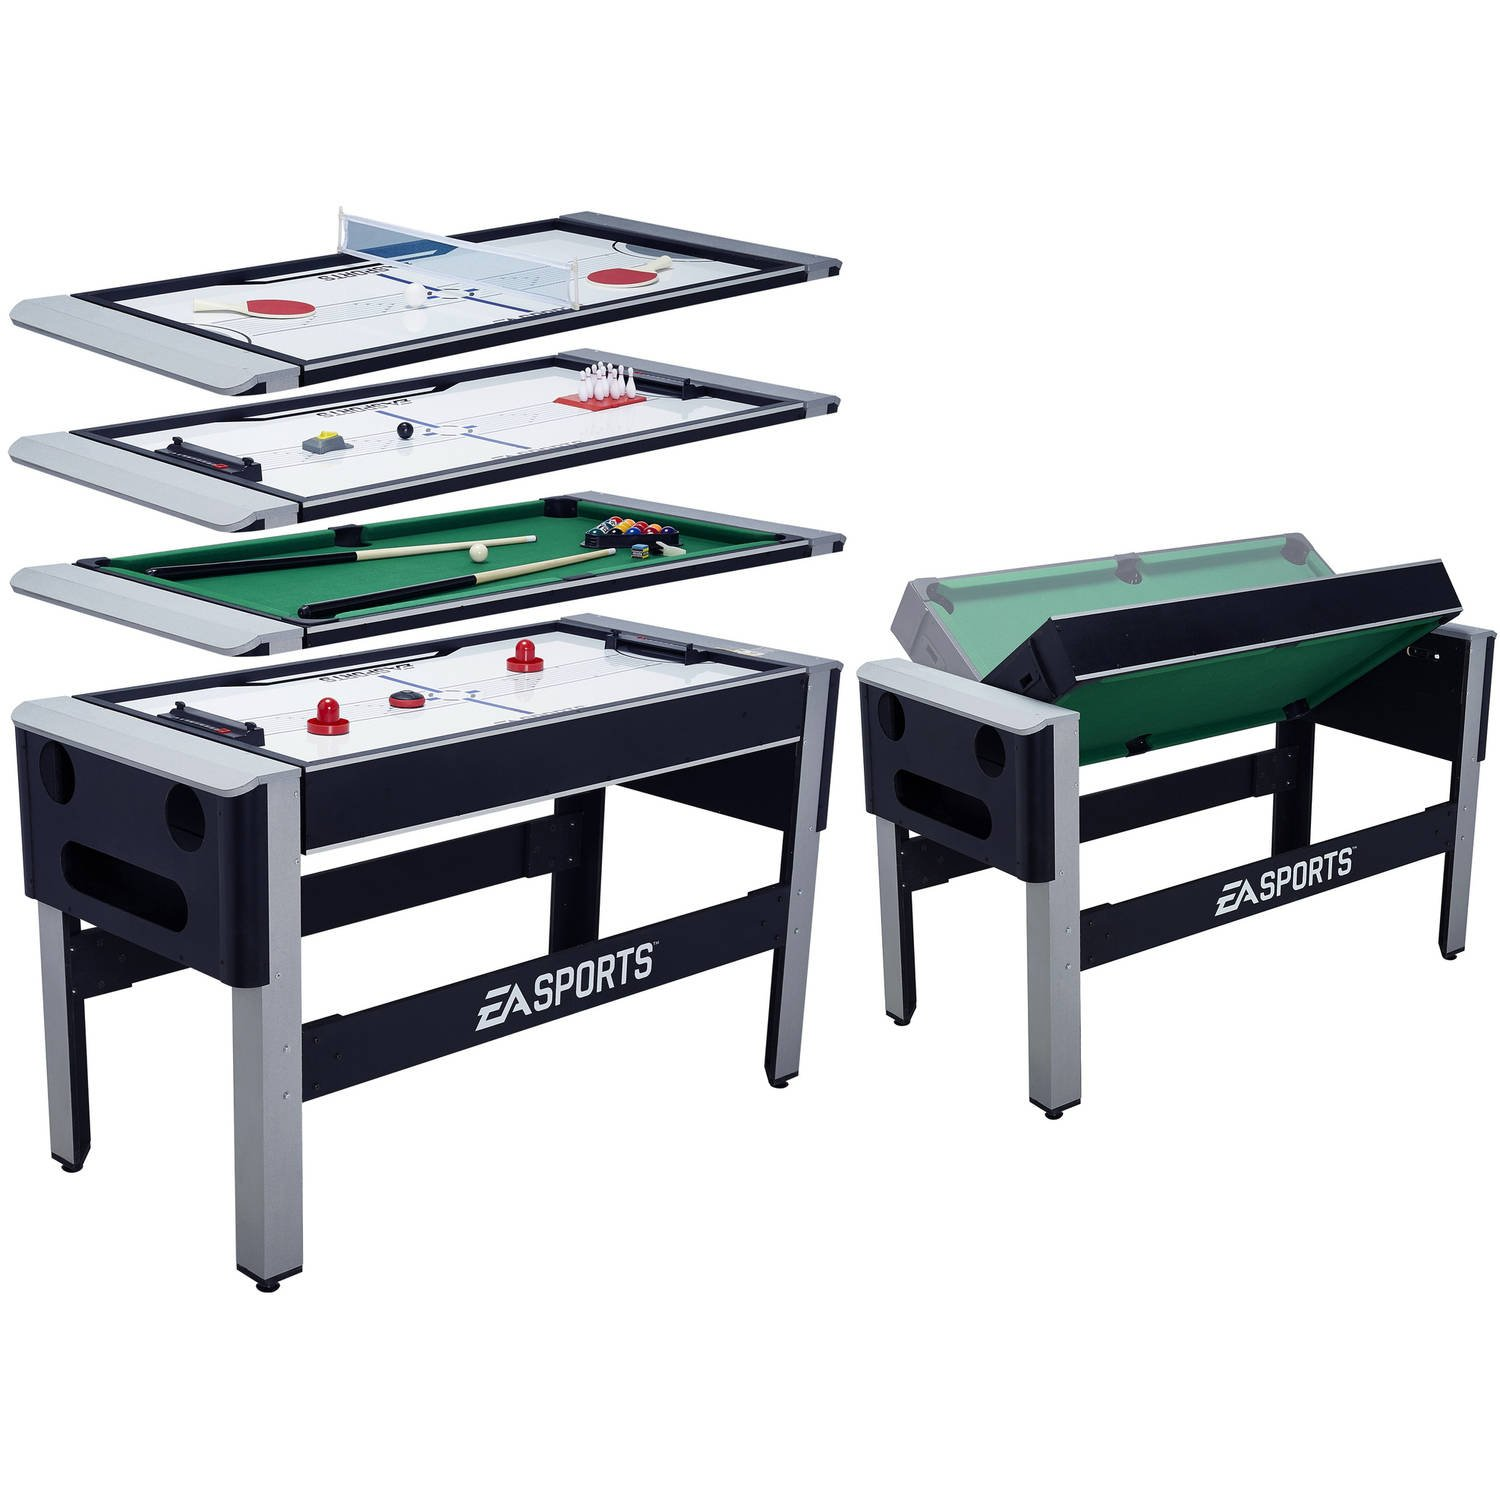 EA Sports Swivel Game Table 4 in 1 with Accessories